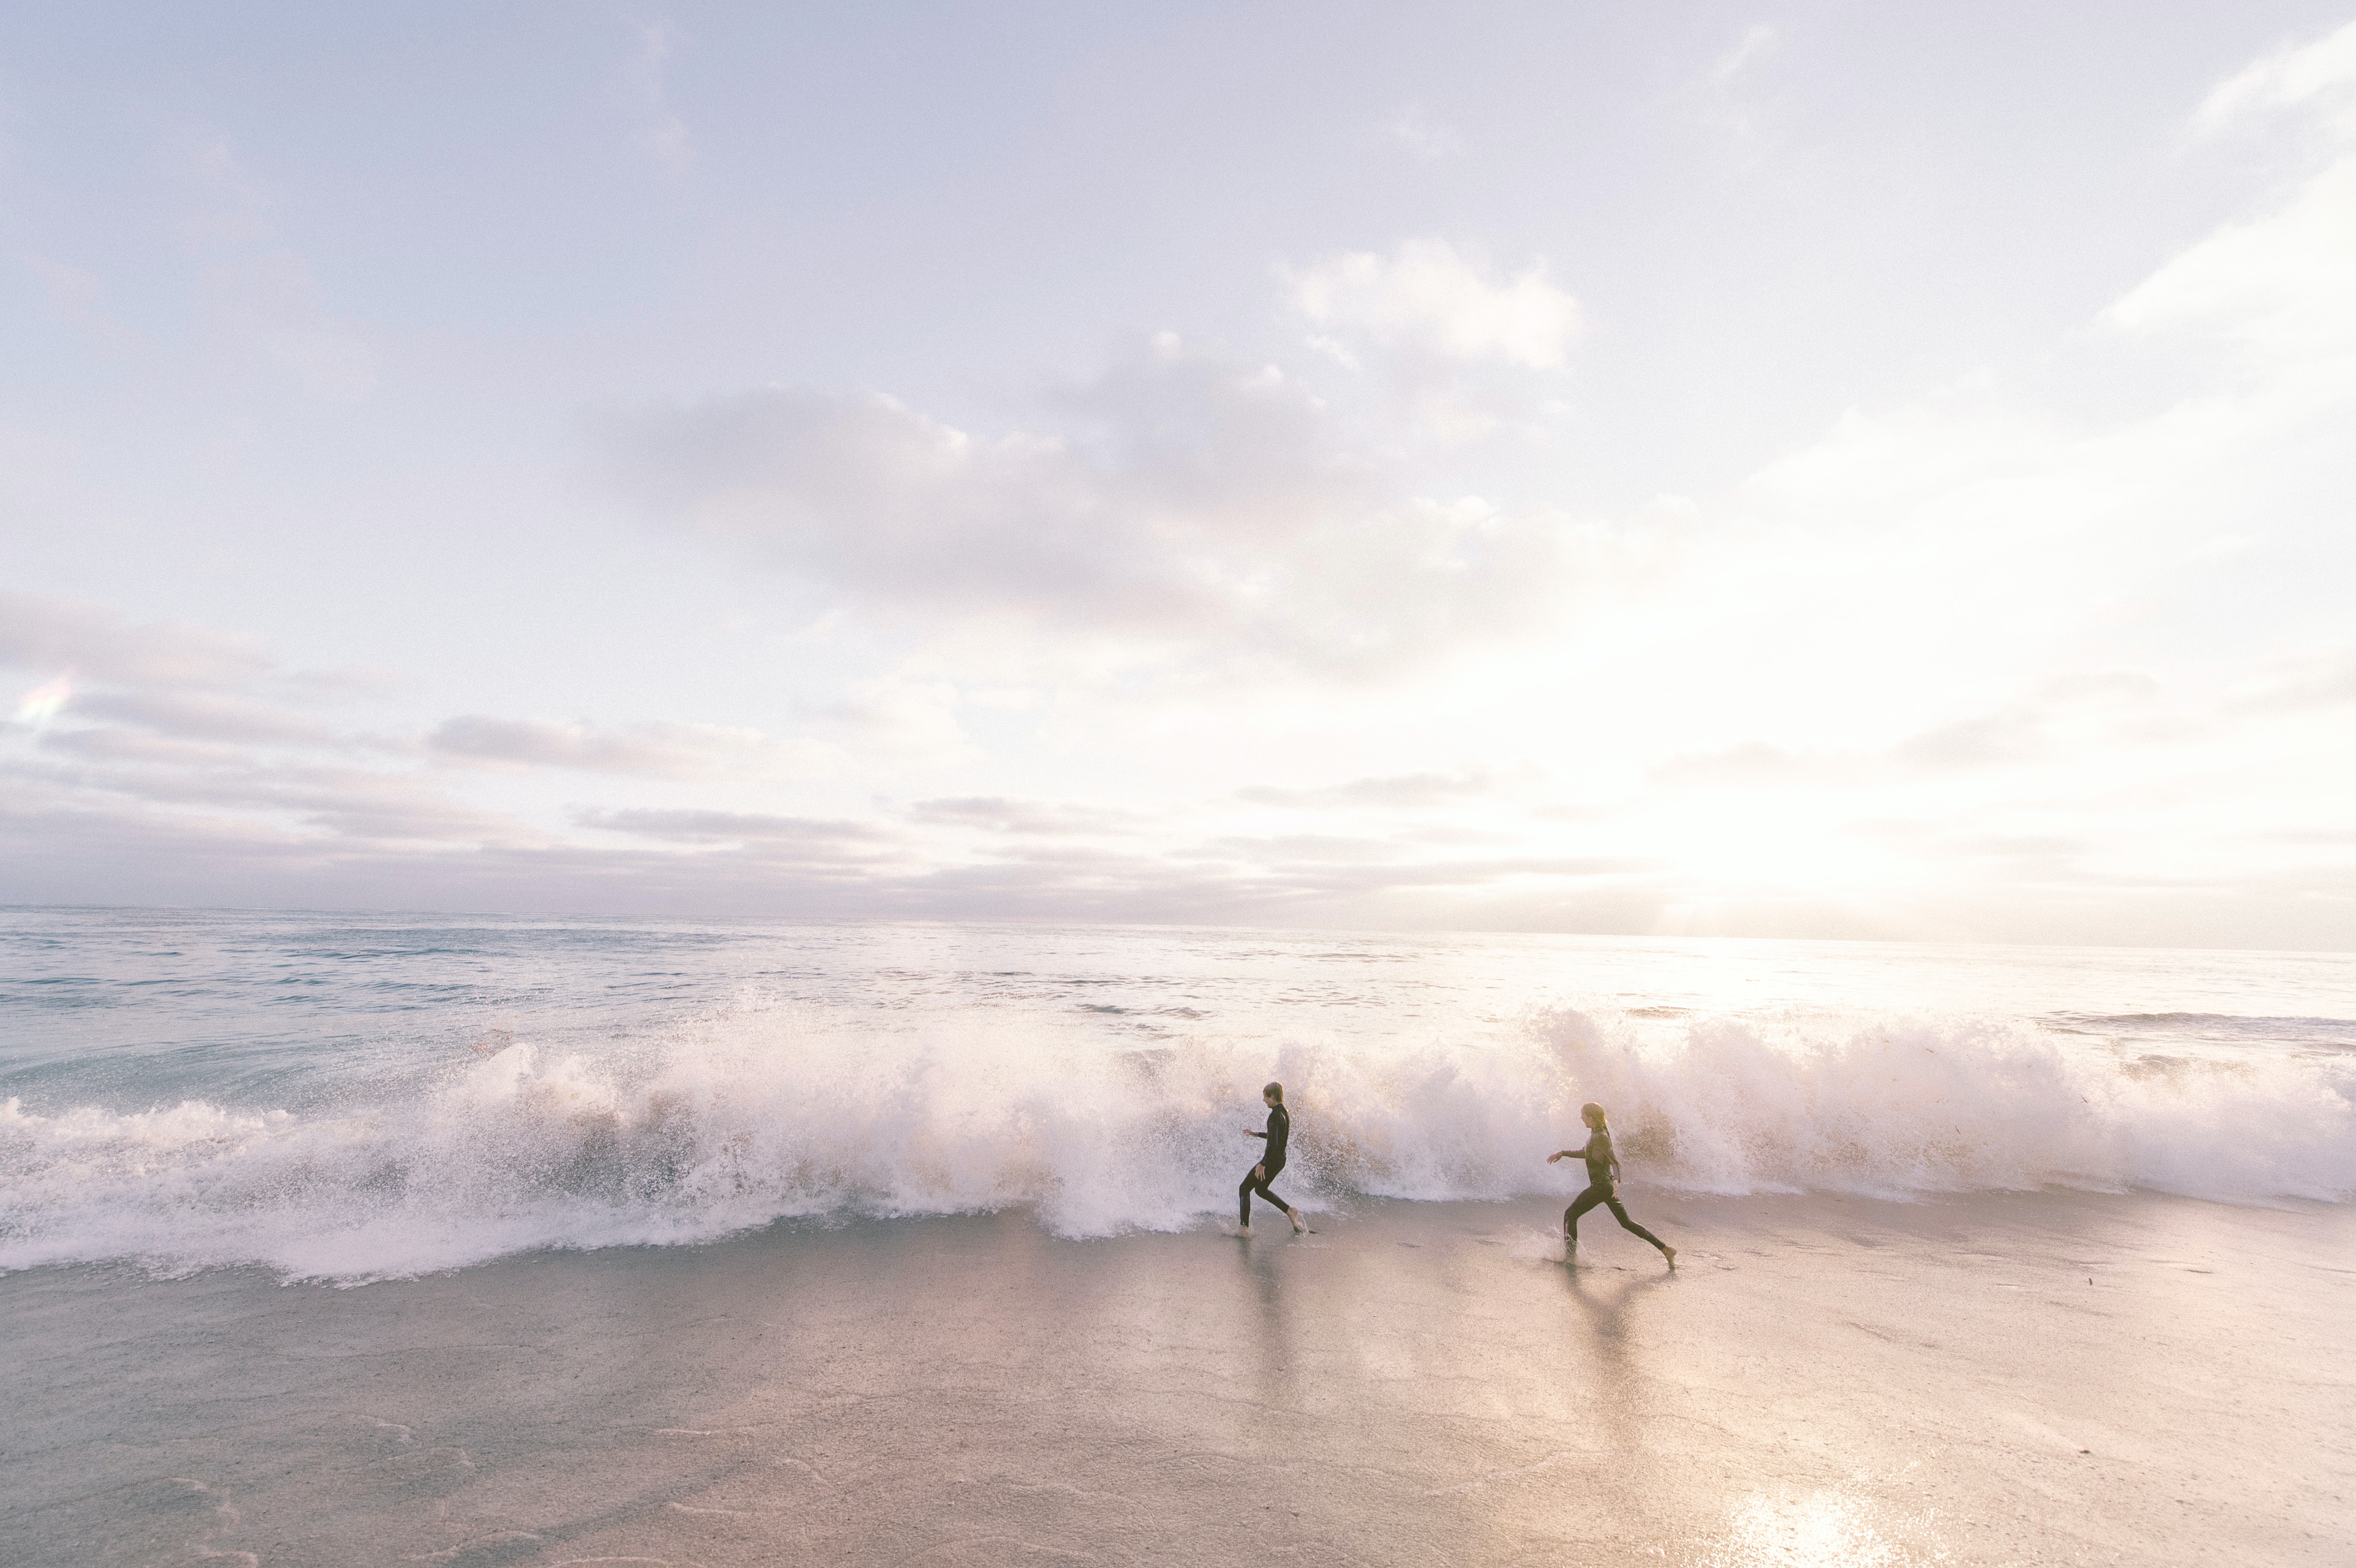 two person running on seaside beach during daytime